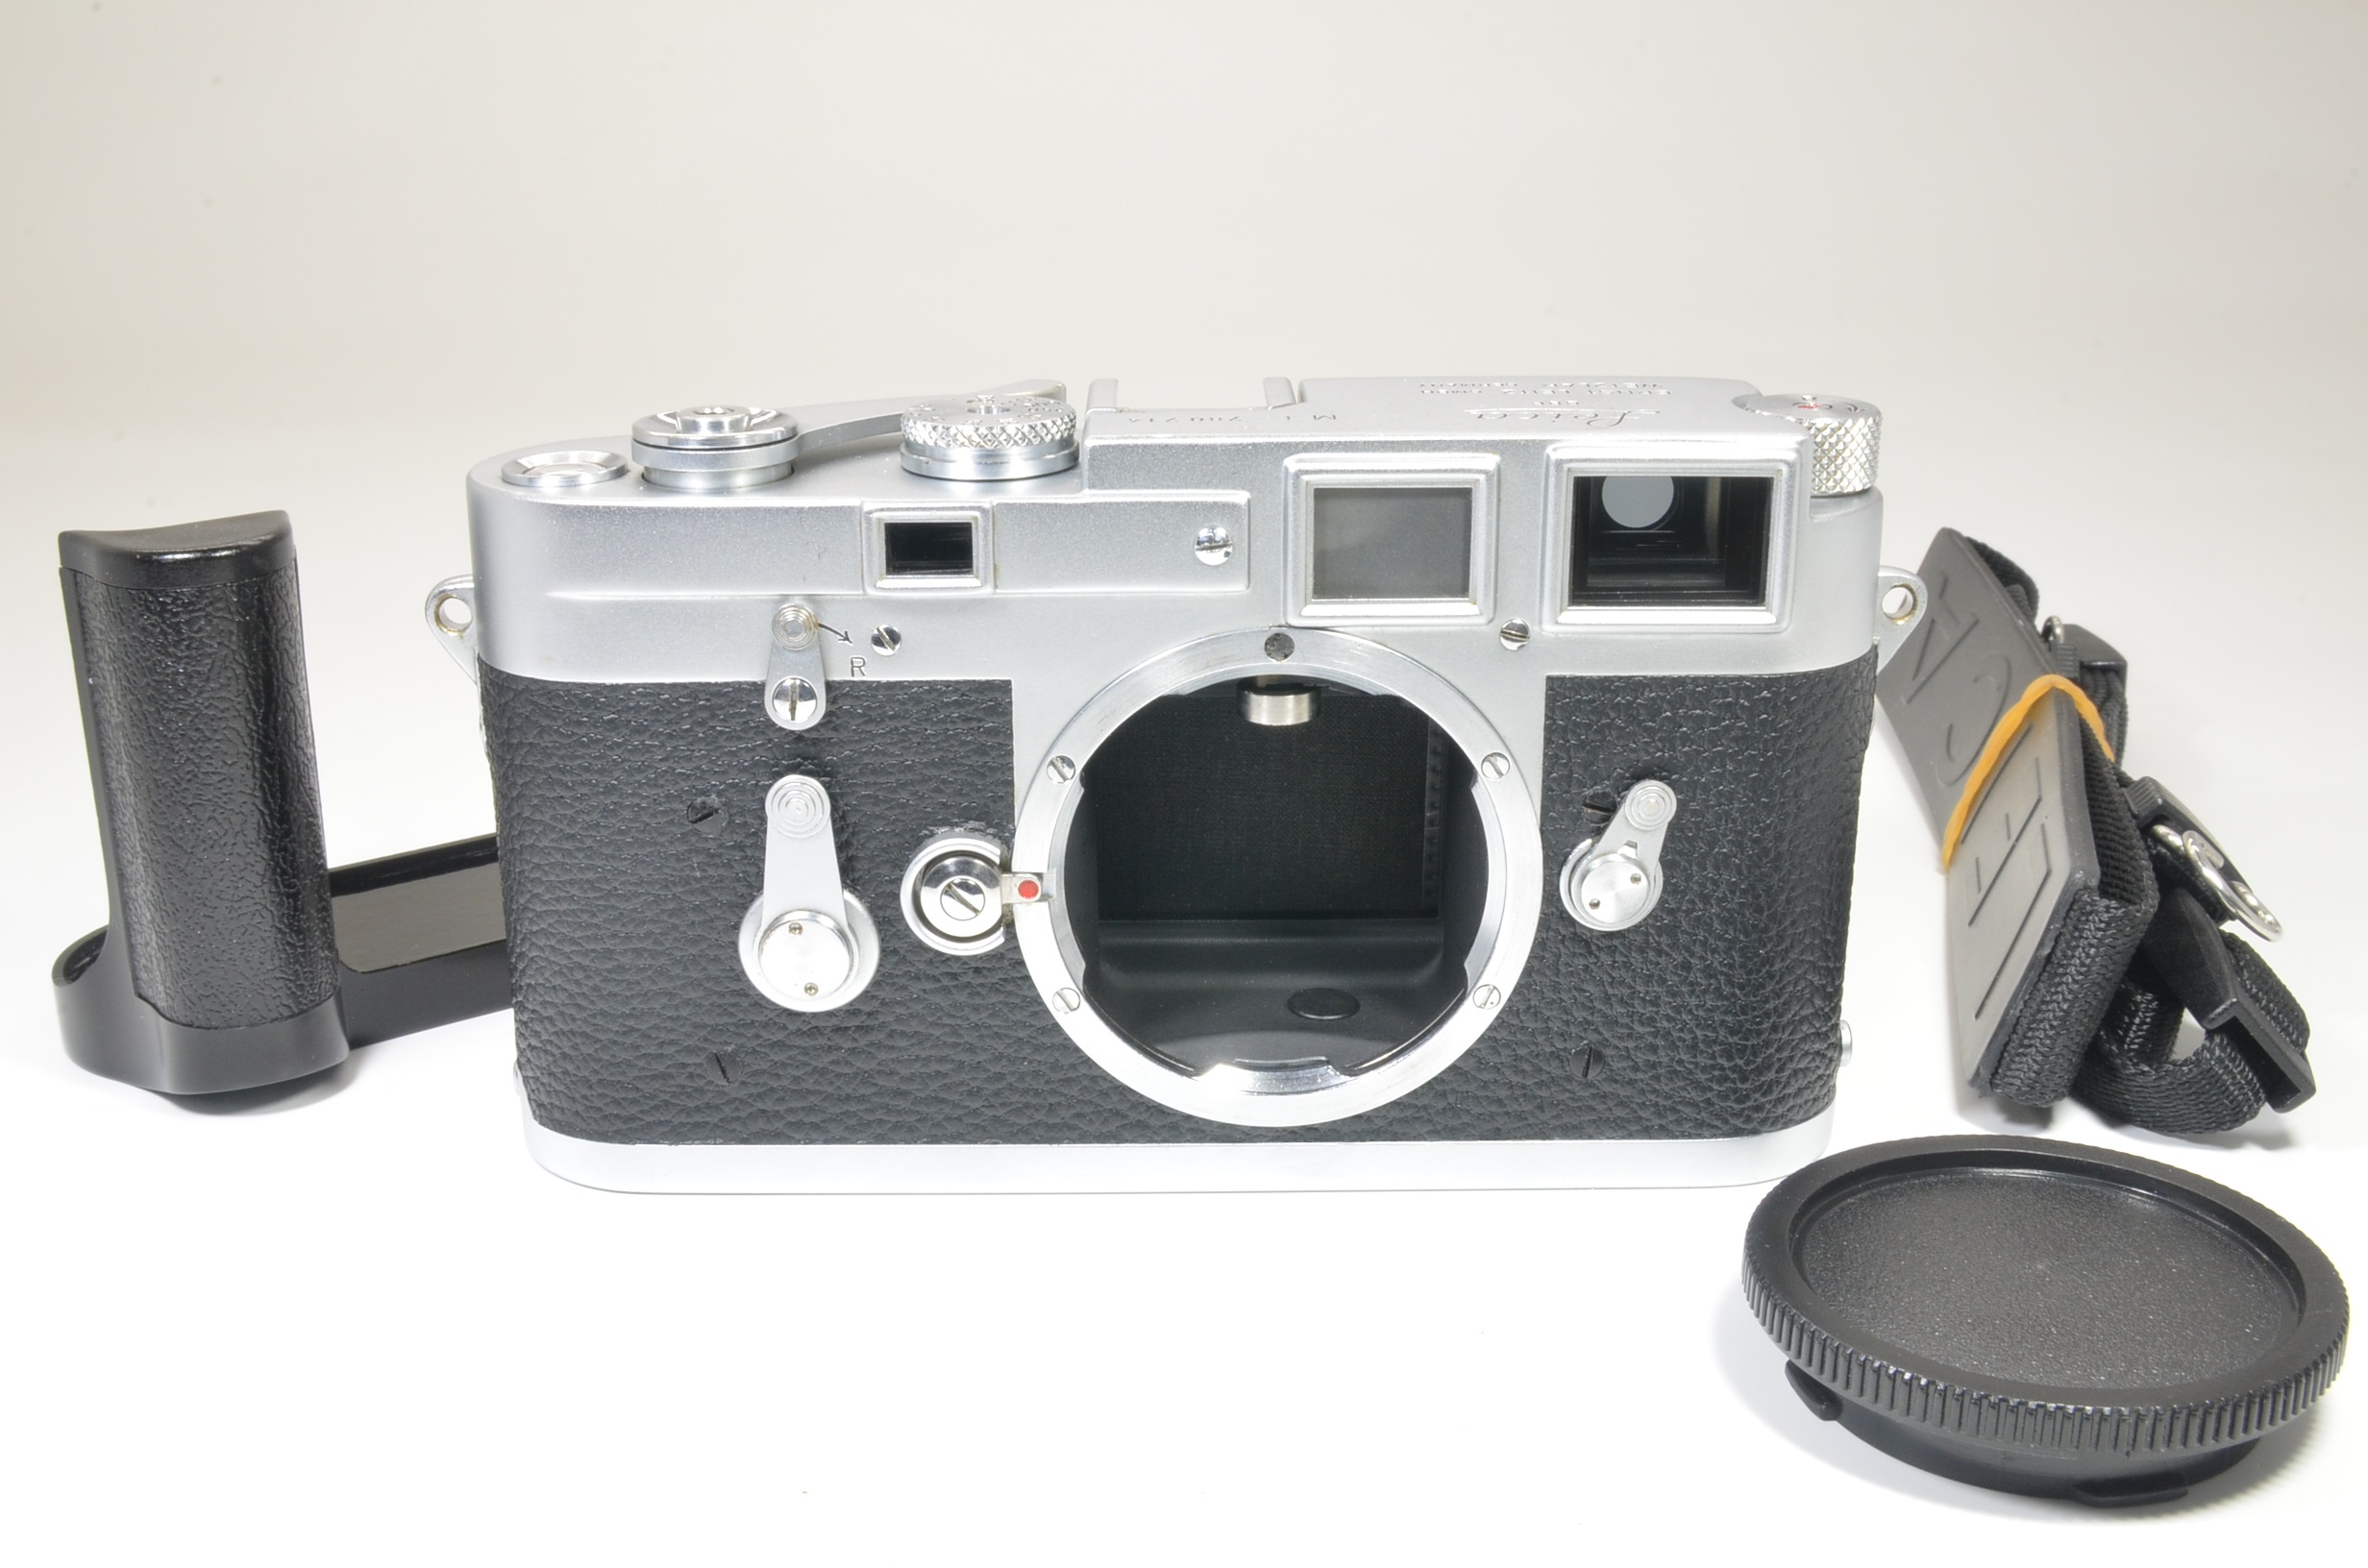 leica m3 double stroke s/n 780714 year 1955 with hand grip shooting tested